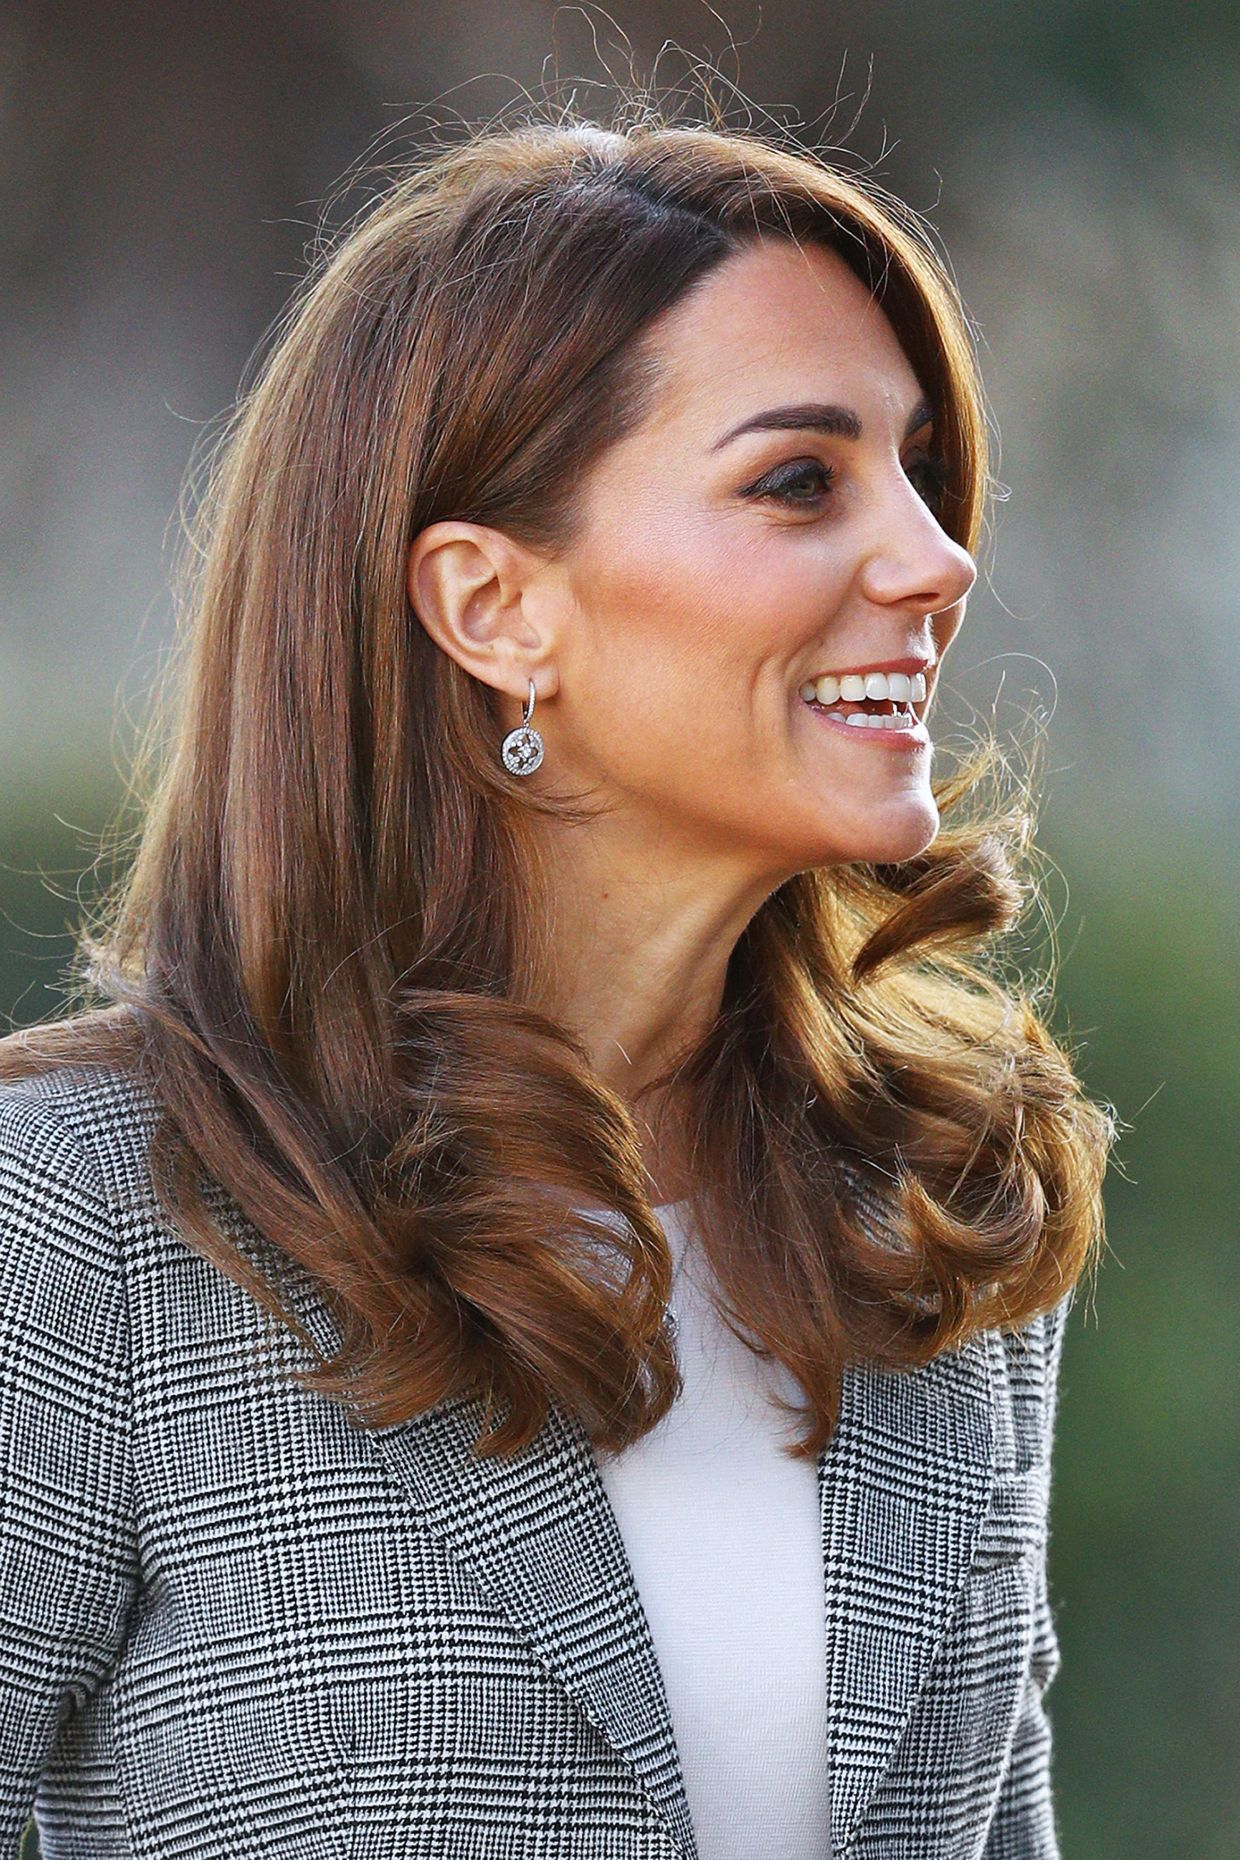 Kate and William shout out to Meg and Harry on Instagram despite 'fab 4 split'